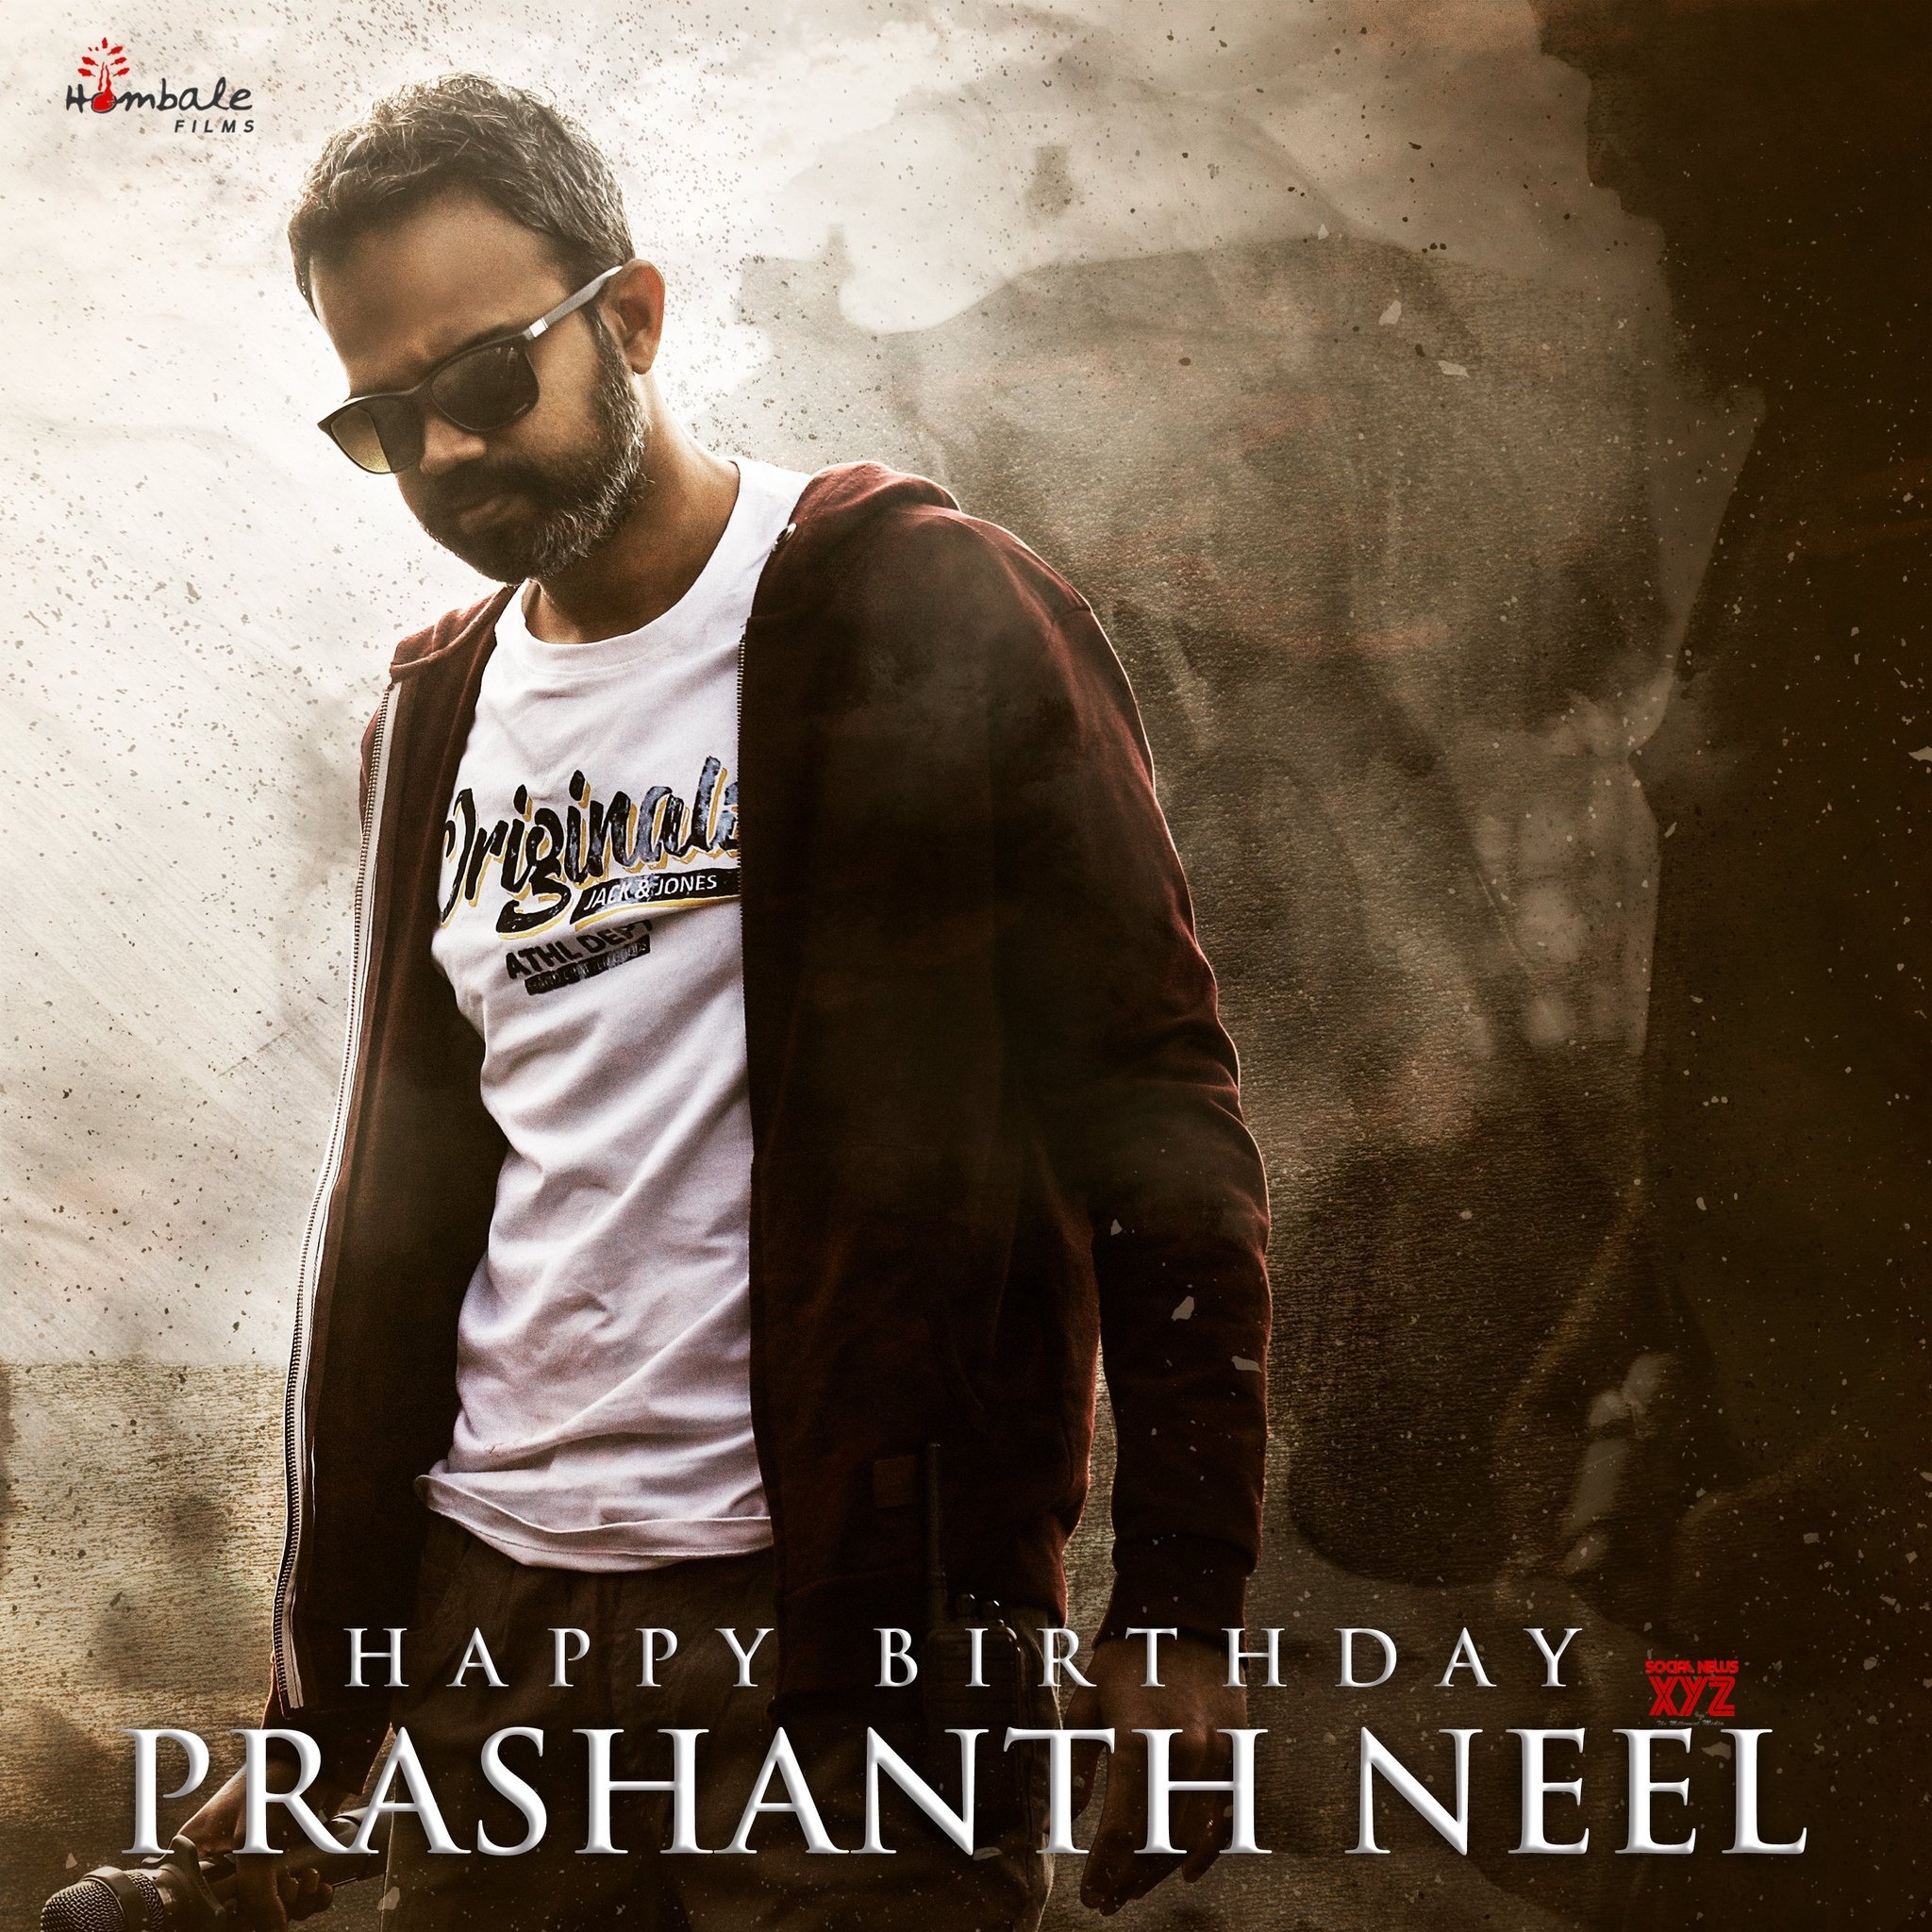 Kgf Director Prashanth Neel Birthday 2020 Posters Social News Xyz